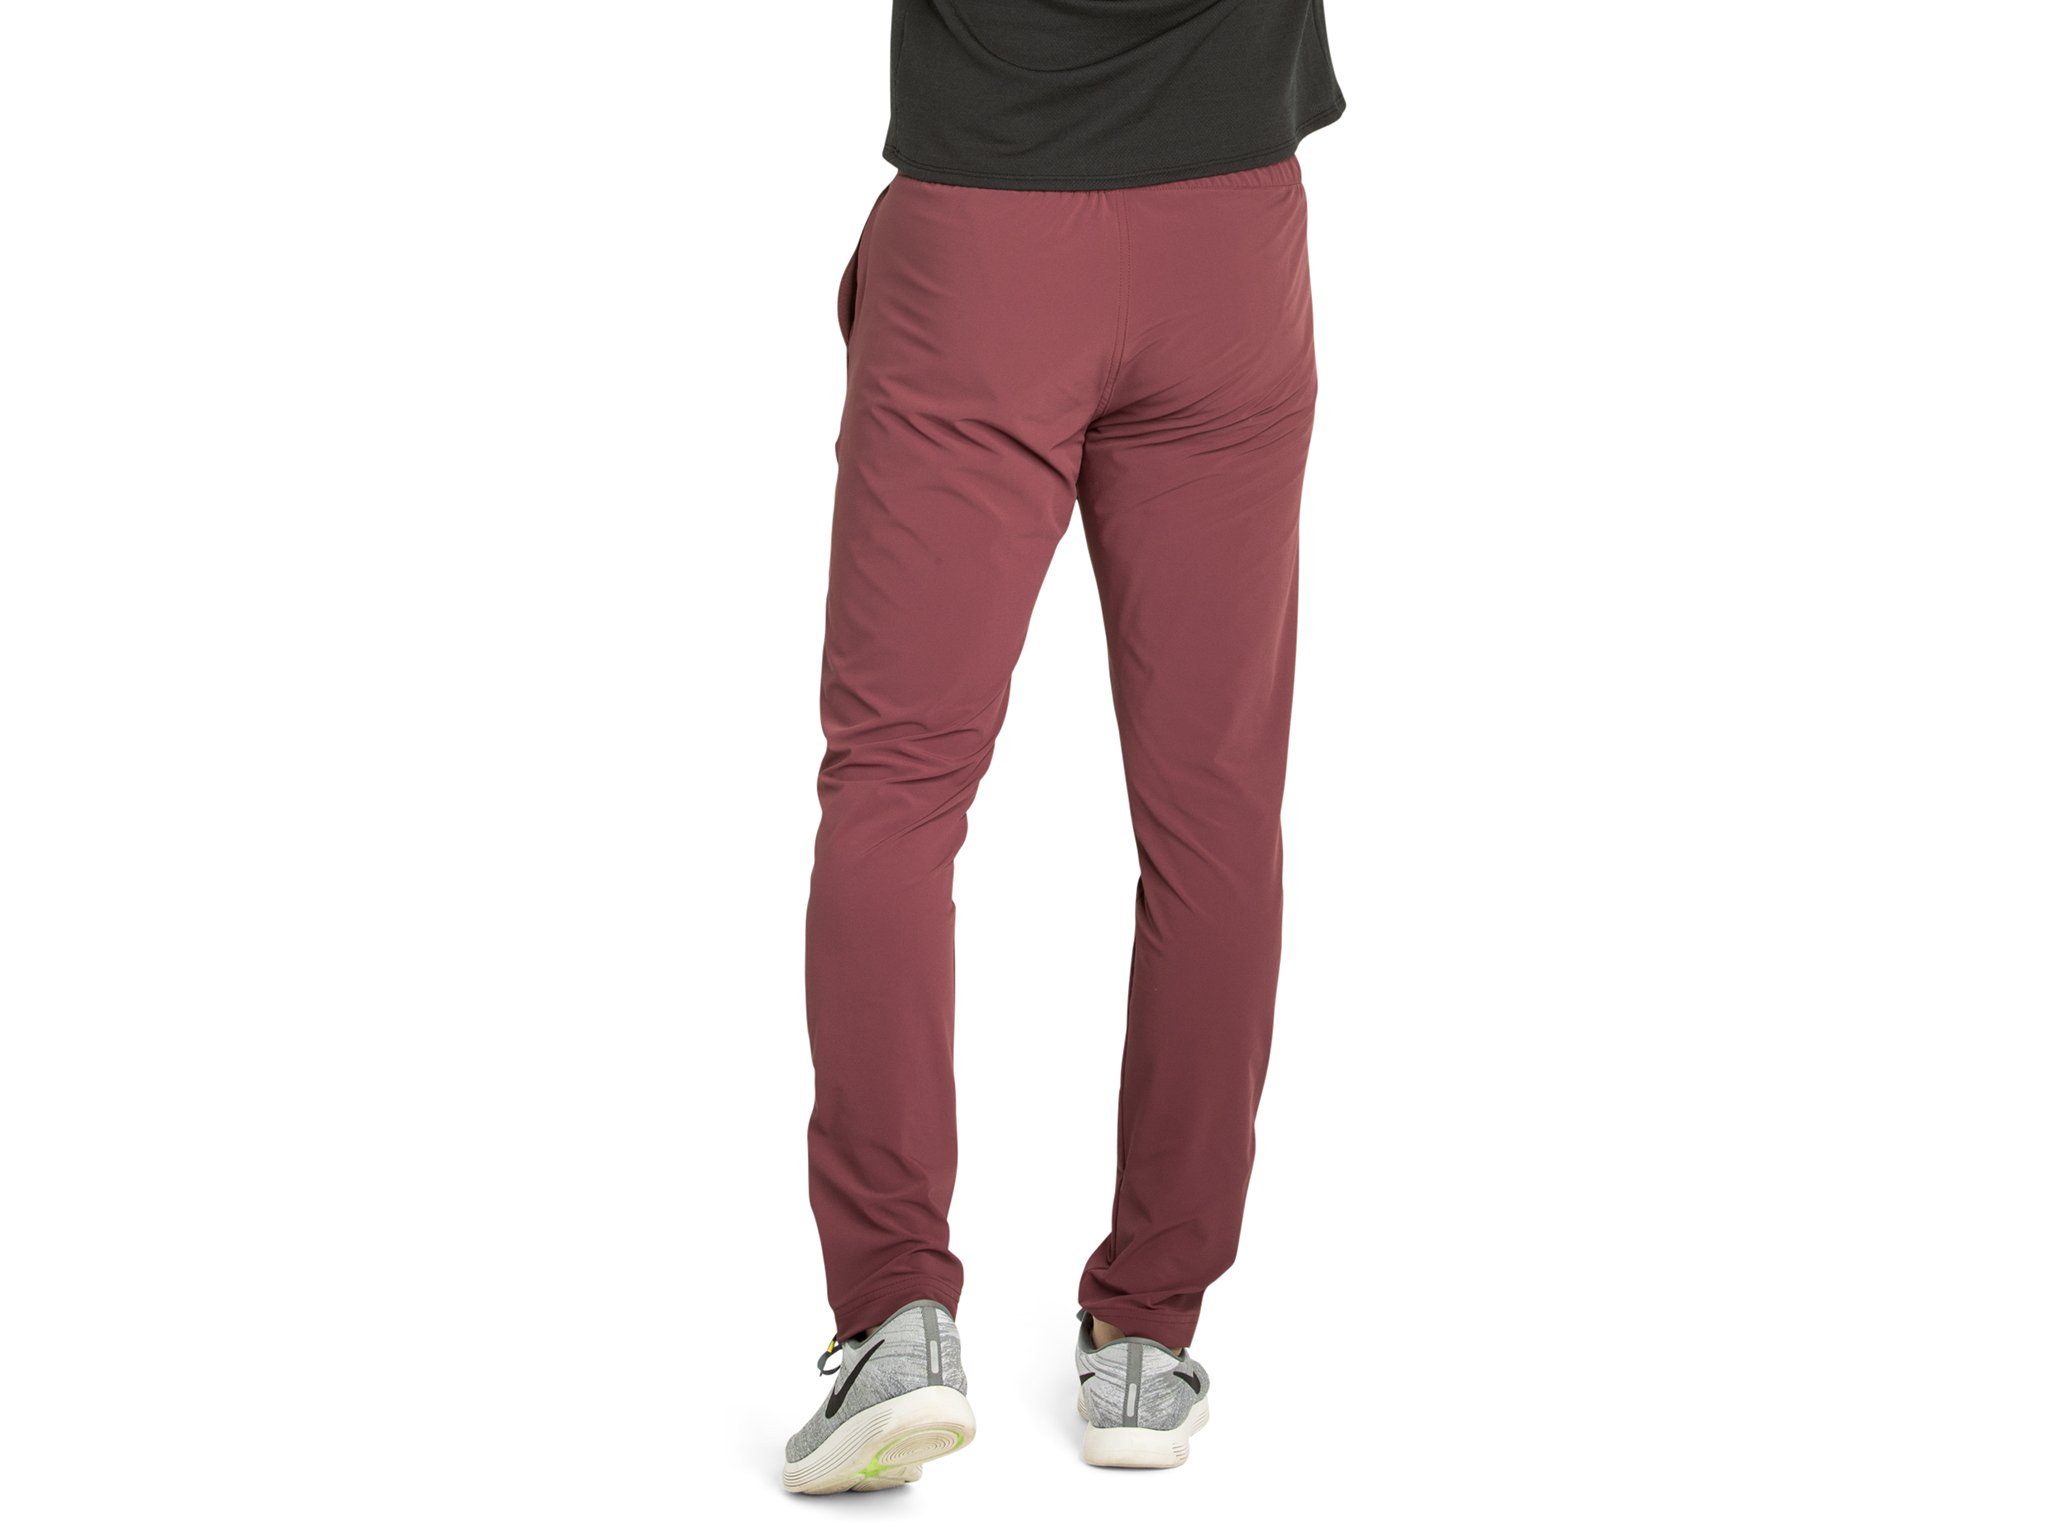 OLIVERS Apparel, Water Repellant, Athletic Cut, 4-Way Stretch, Bradbury Jogger Pants, 31 Inch Inseam - Crimson - Large by OLIVERS (Image #2)